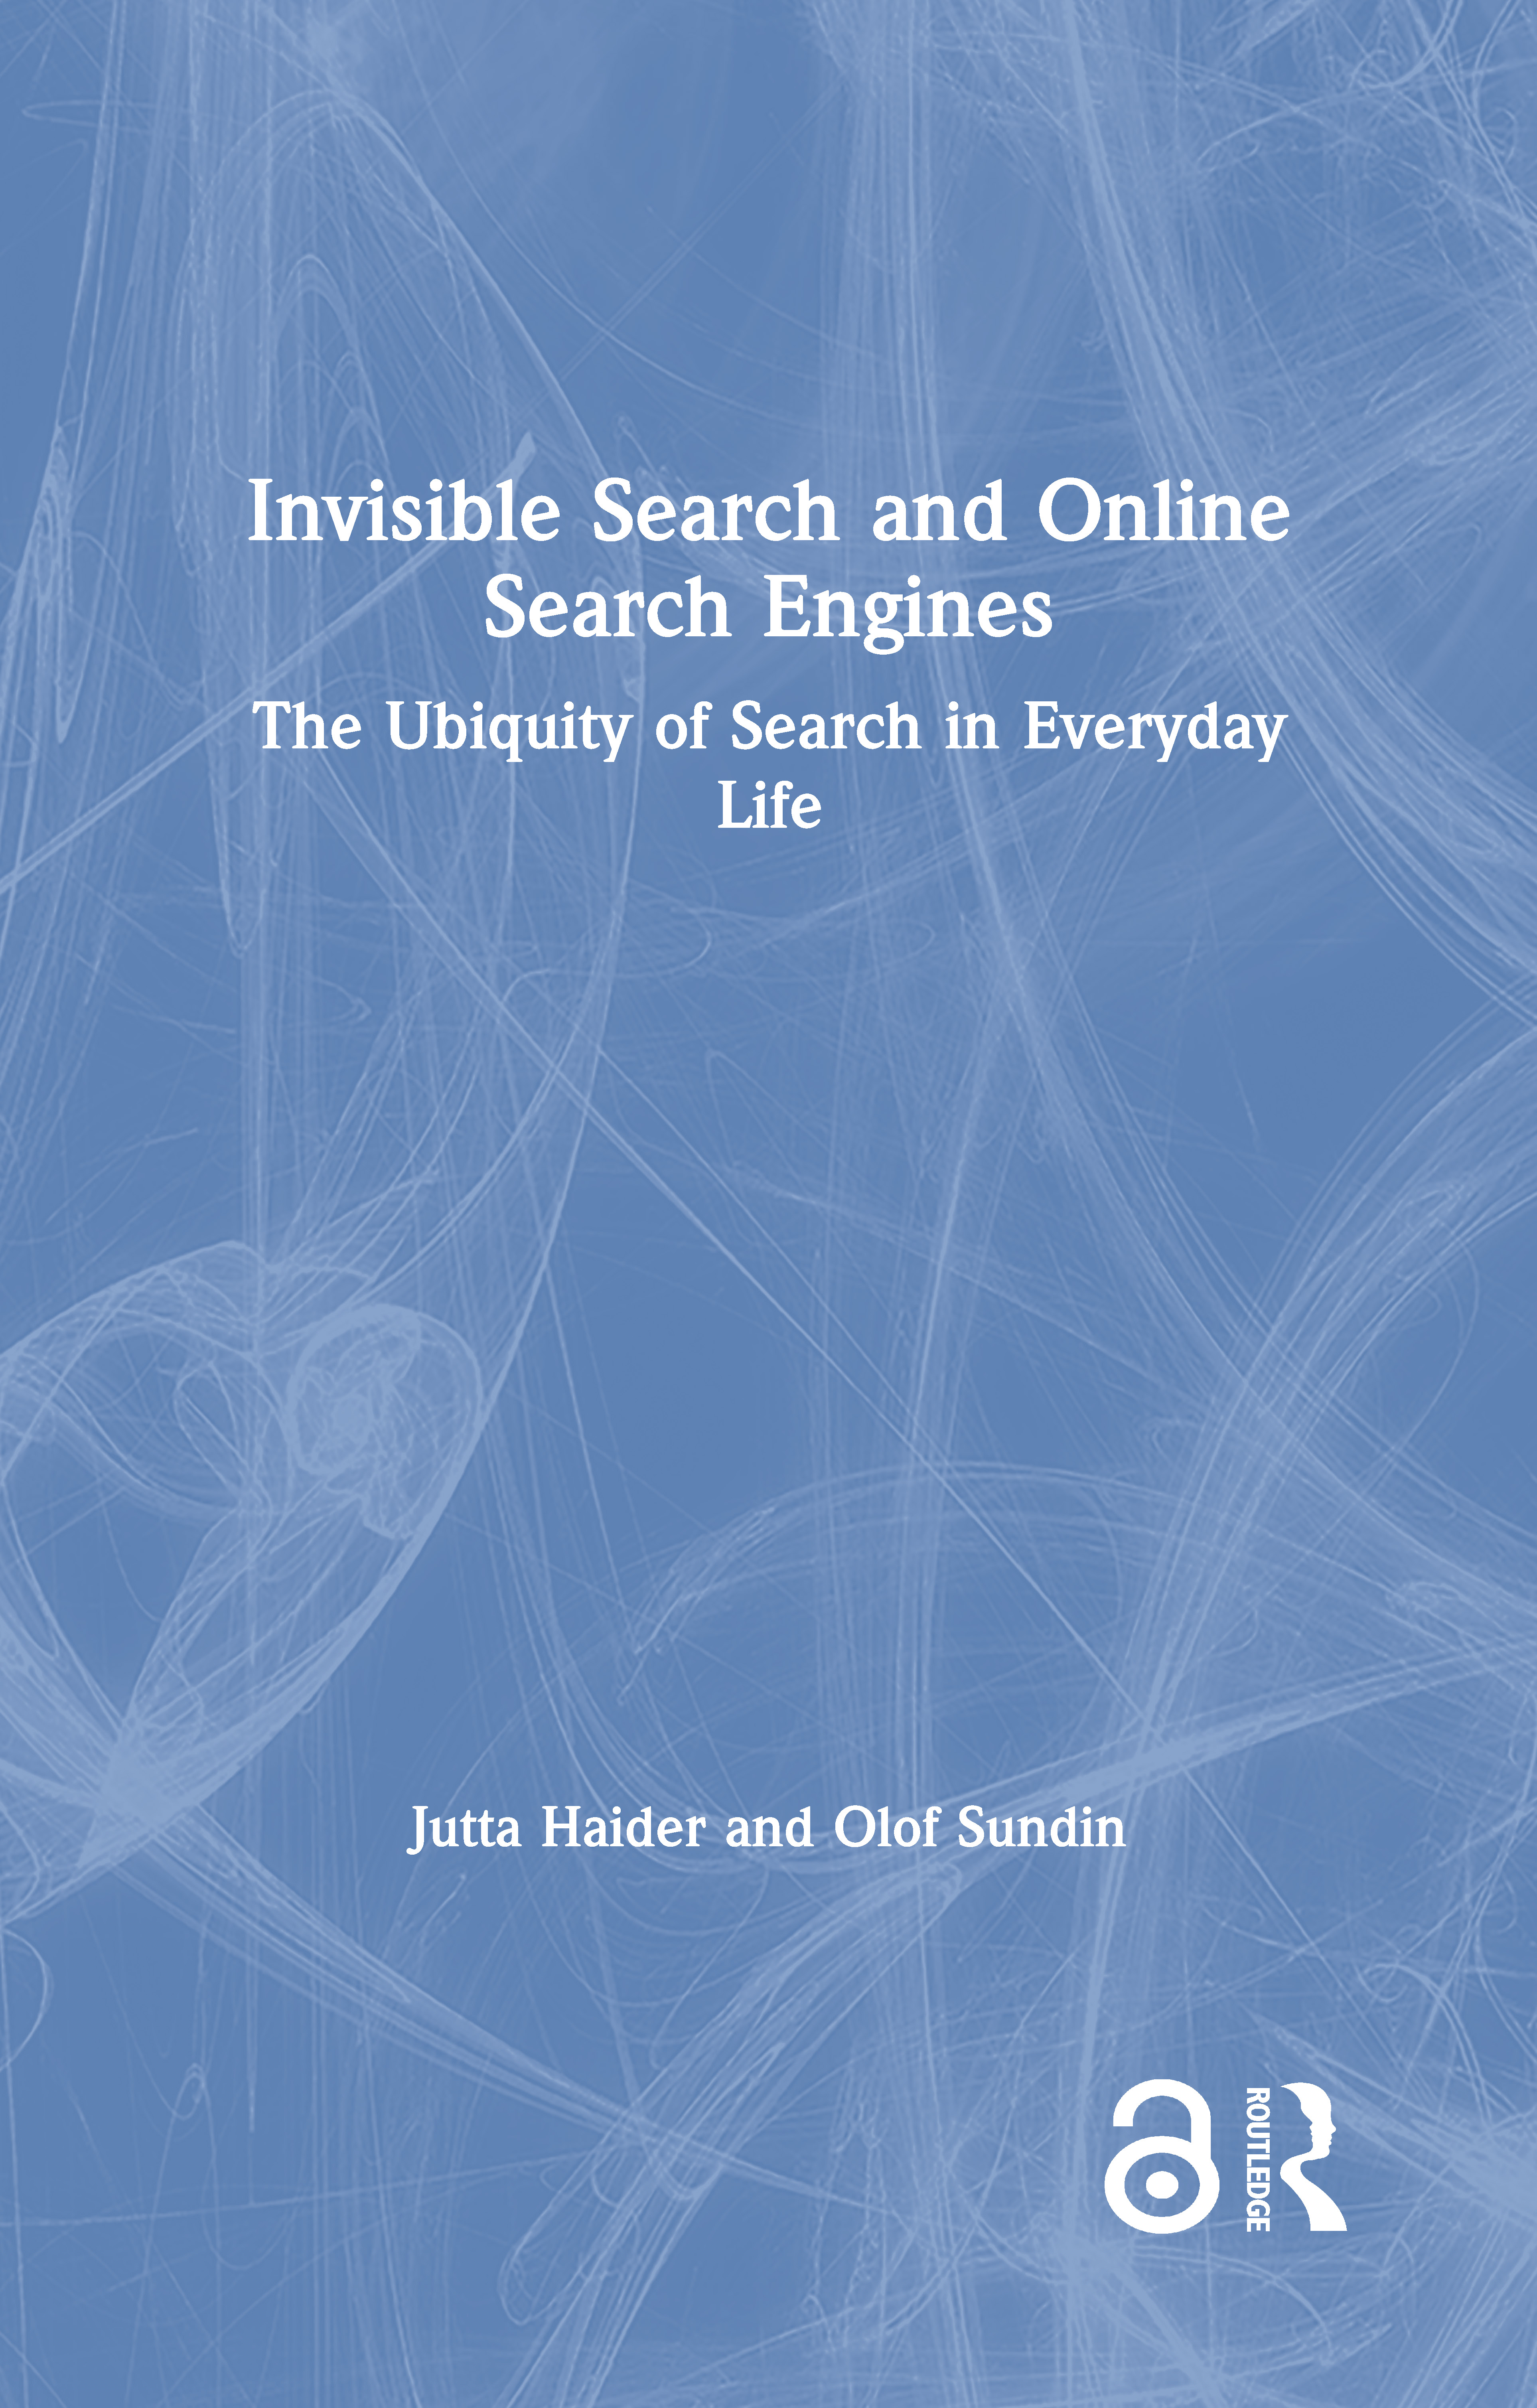 Invisible Search and Online Search Engines: The Ubiquity of Search in Everyday Life book cover